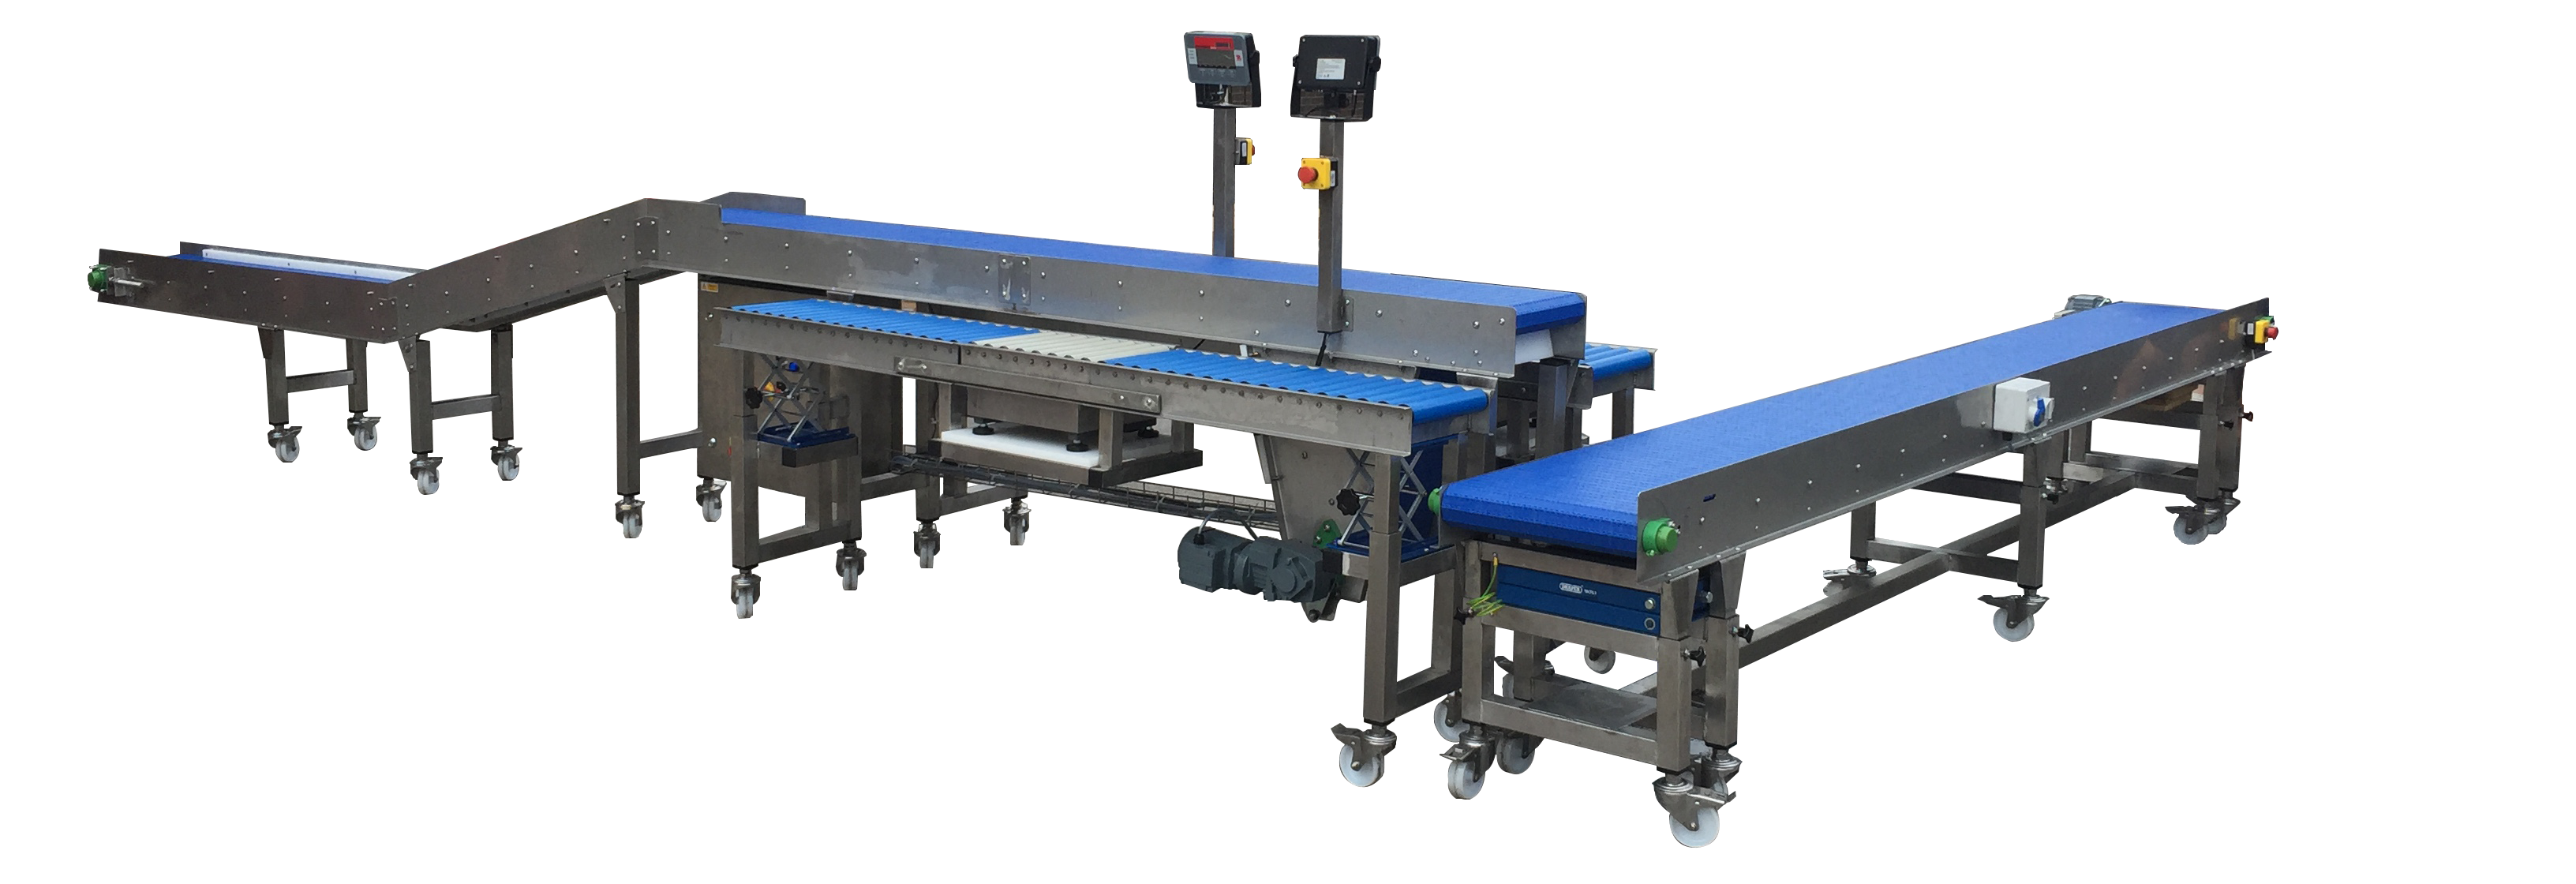 height adjustable workbenches integrated with adjustable height conveyors and weighing systems